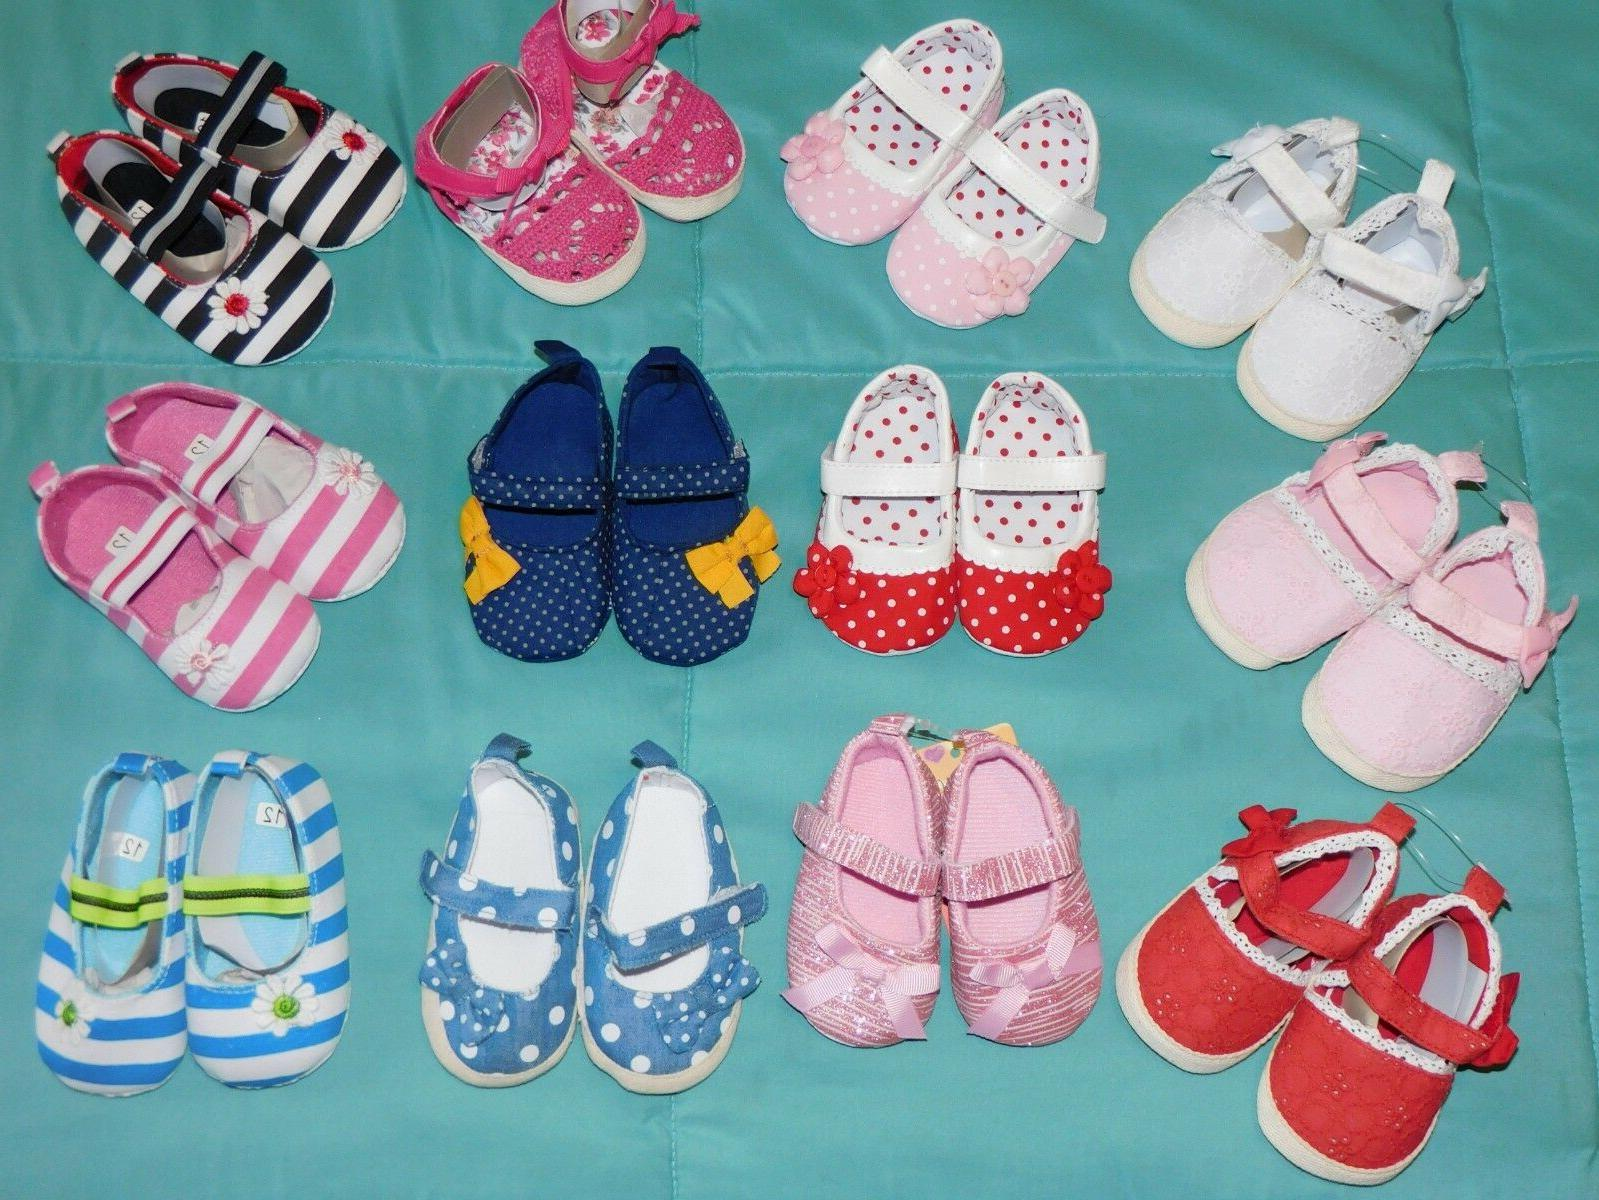 soft fabric baby shoes and first walkers